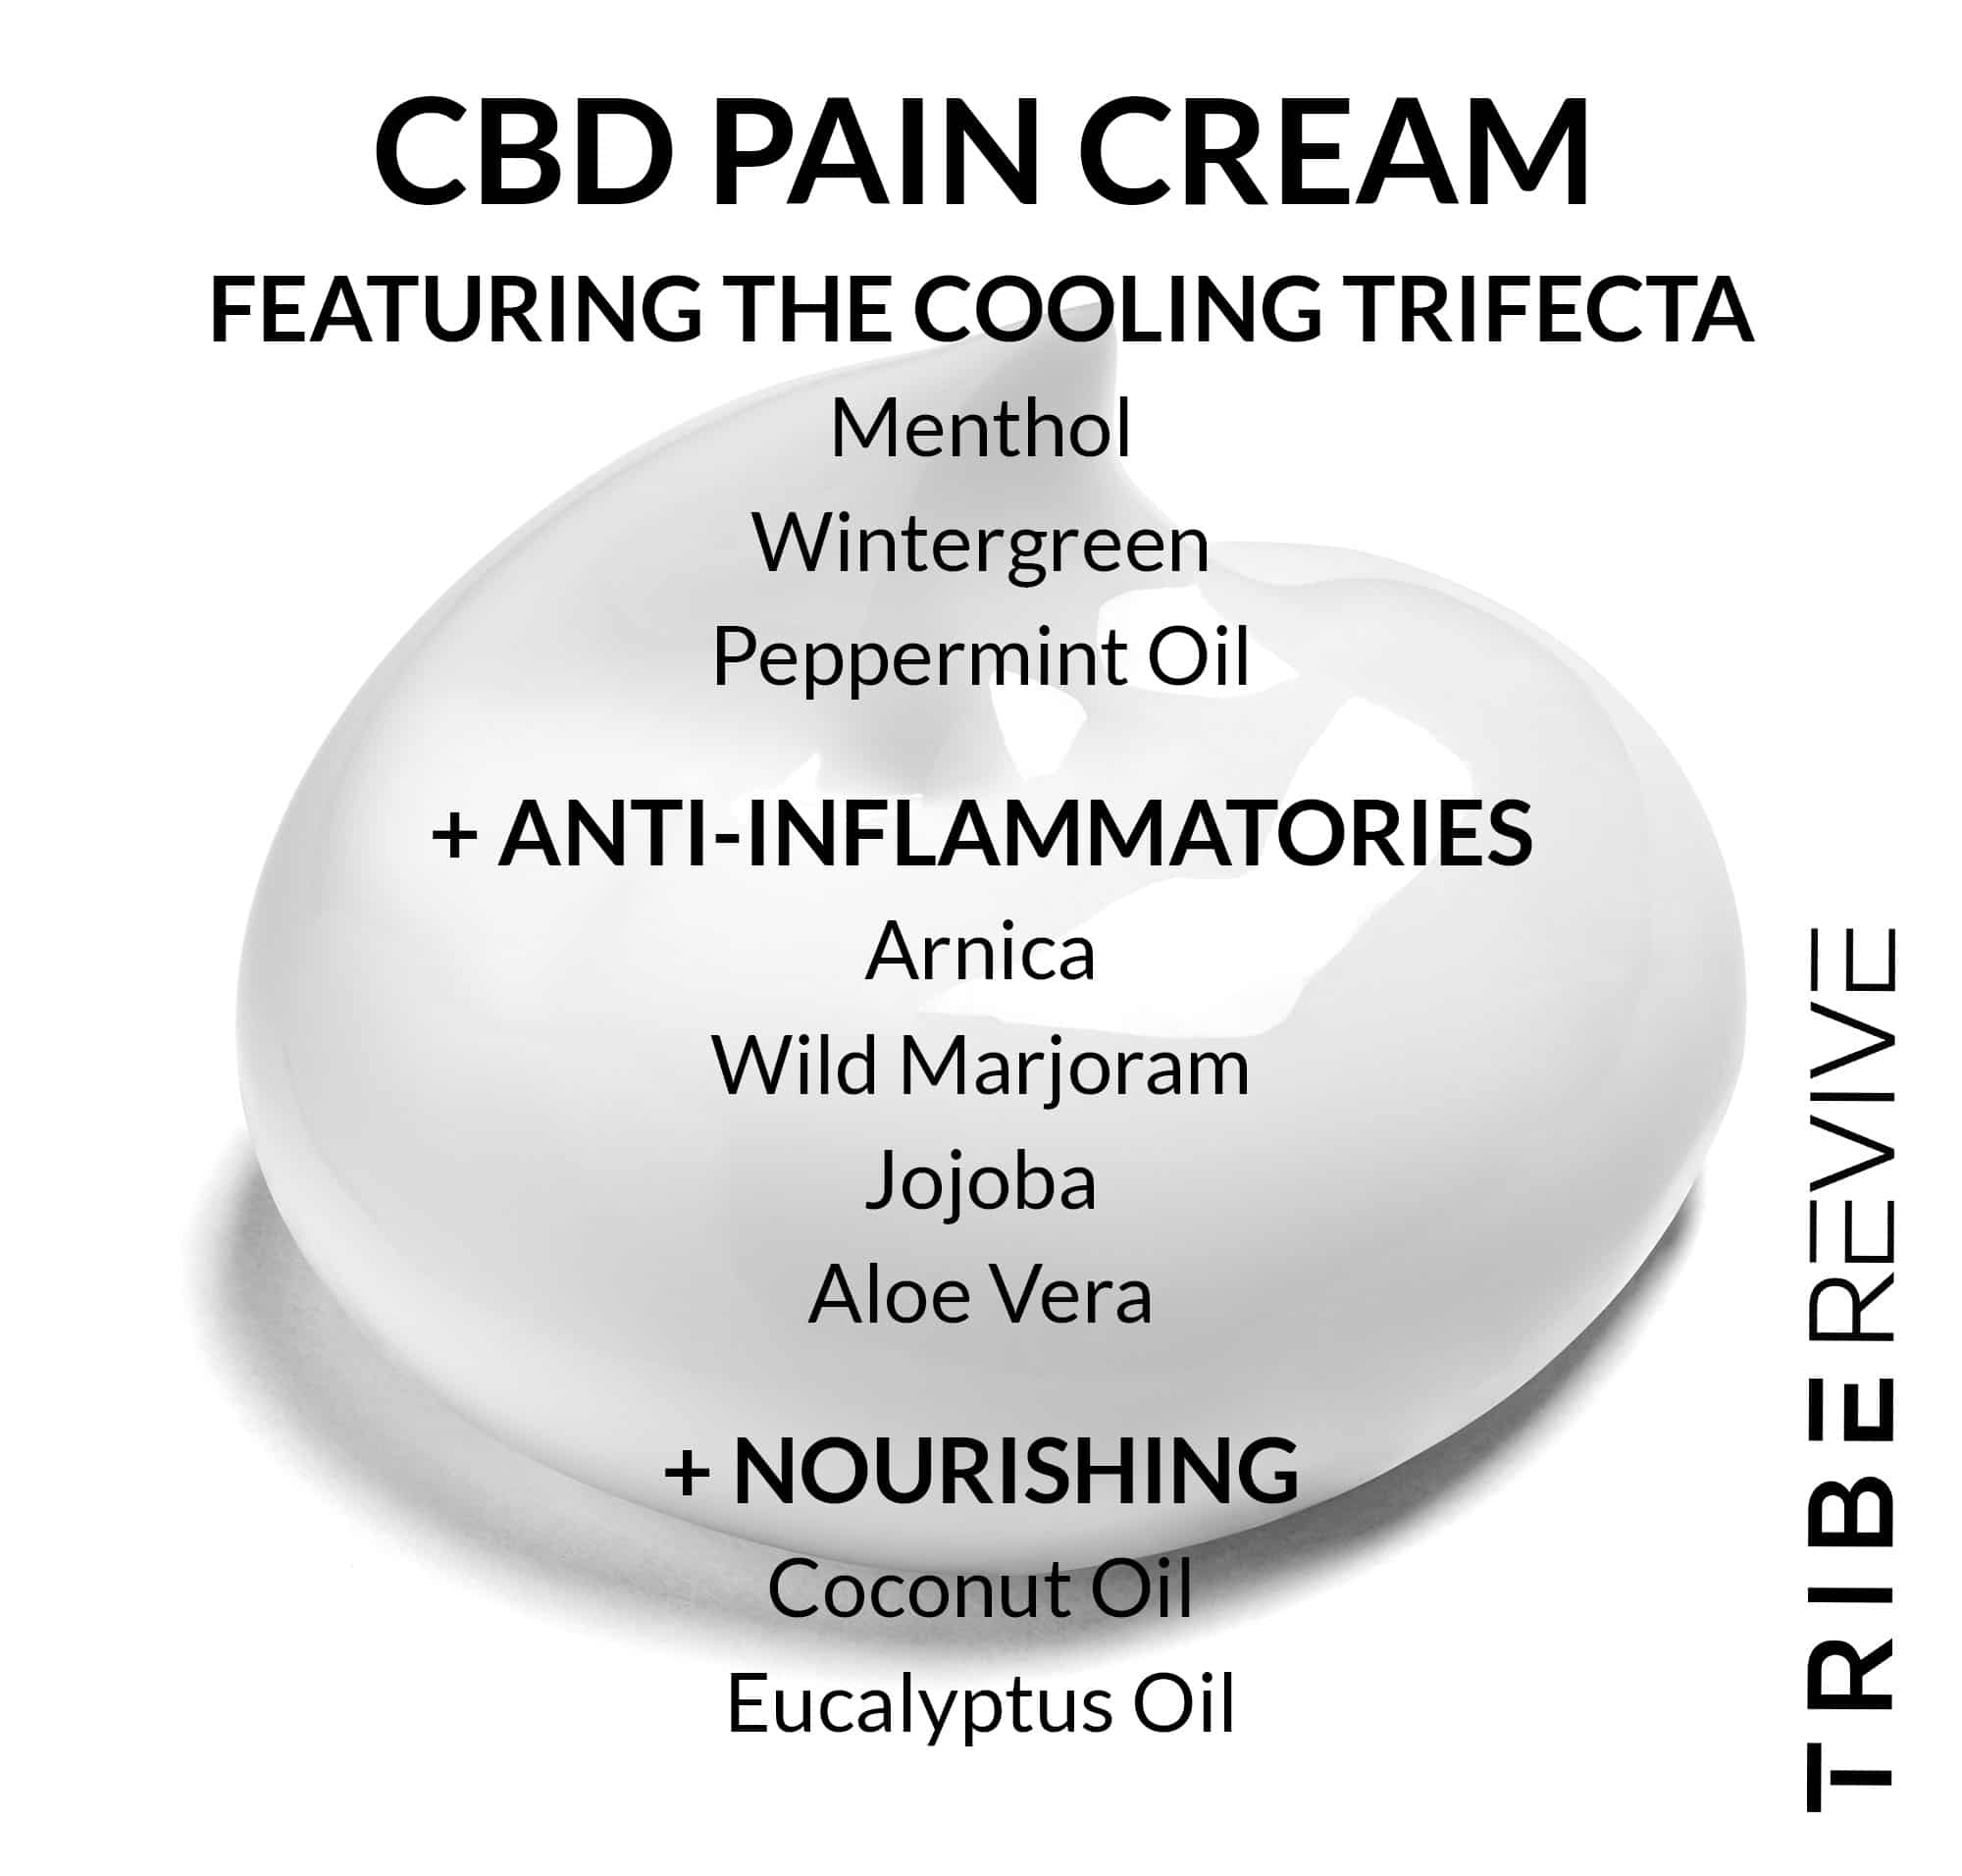 Tribe Revive CBD Pain Cream Ingredients - TribeTokes